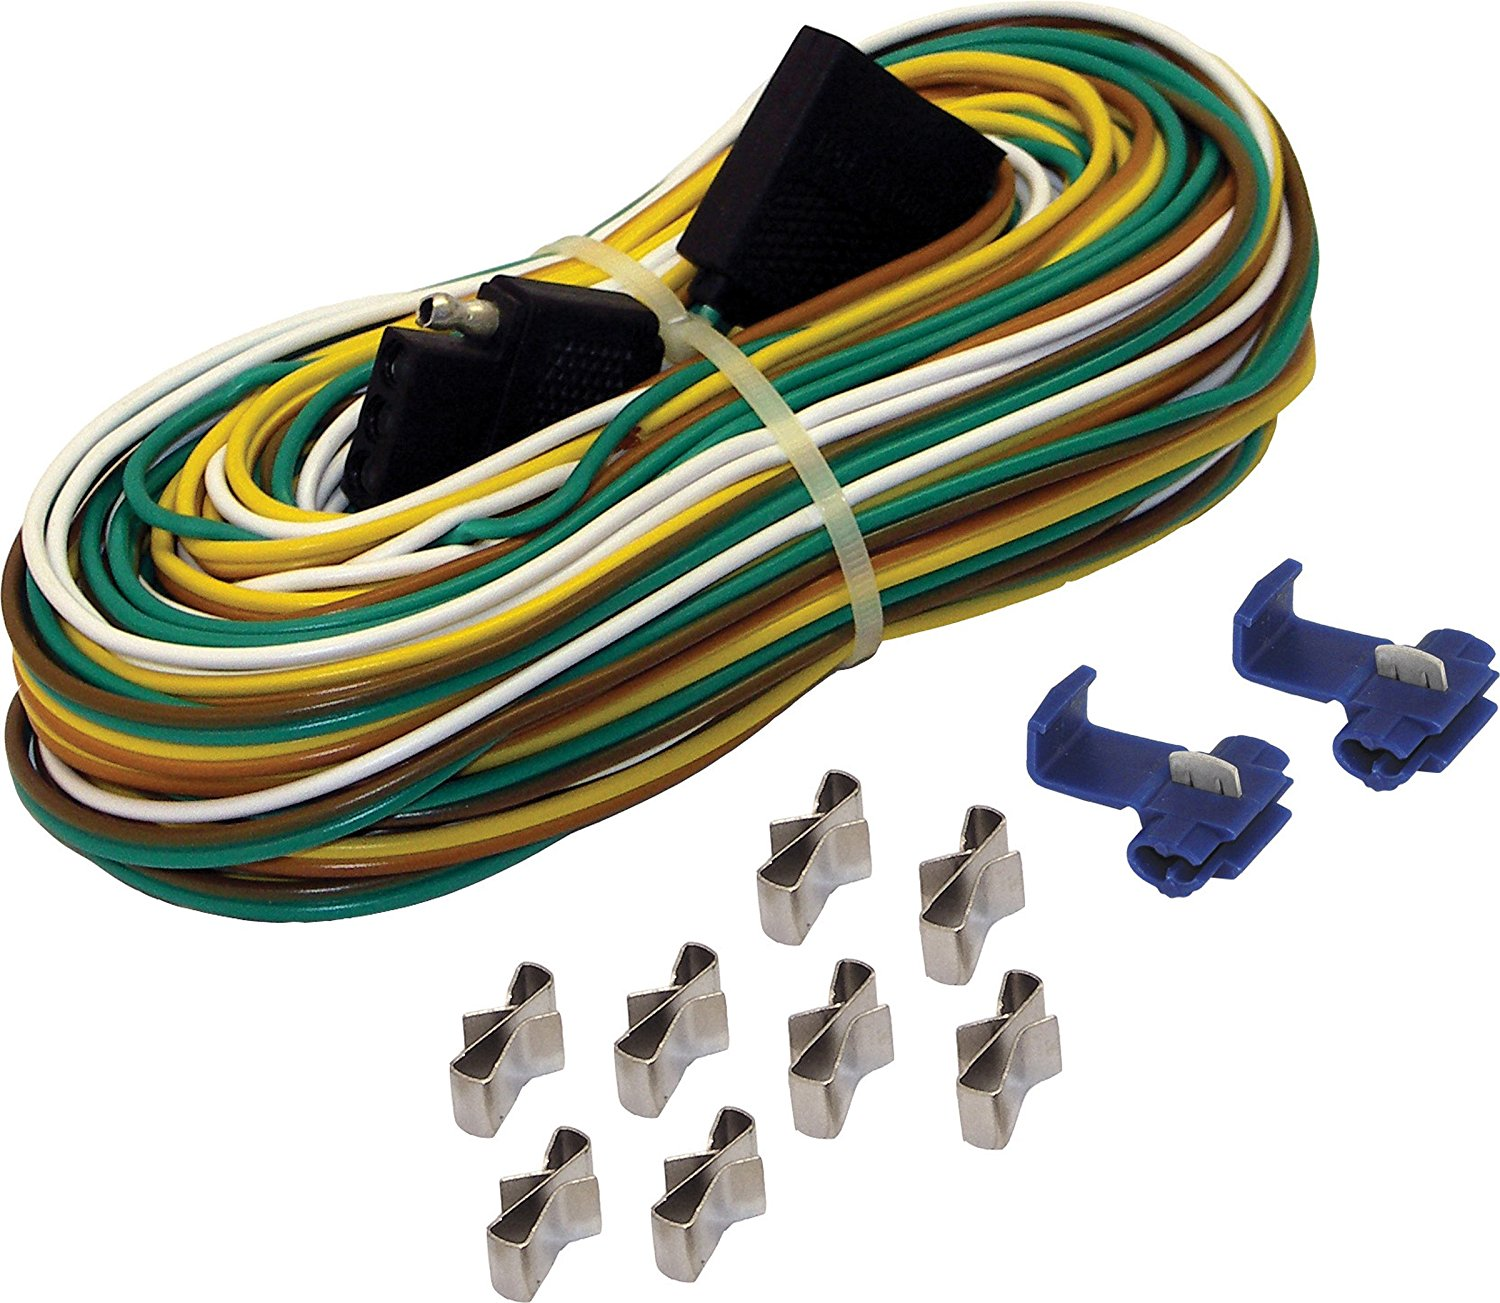 hight resolution of 4 way trailer wire harness 25 feet features a 25 wishbone trailer harness a 4 vehicle side connector and color coded 4 way wires by shoreline marine